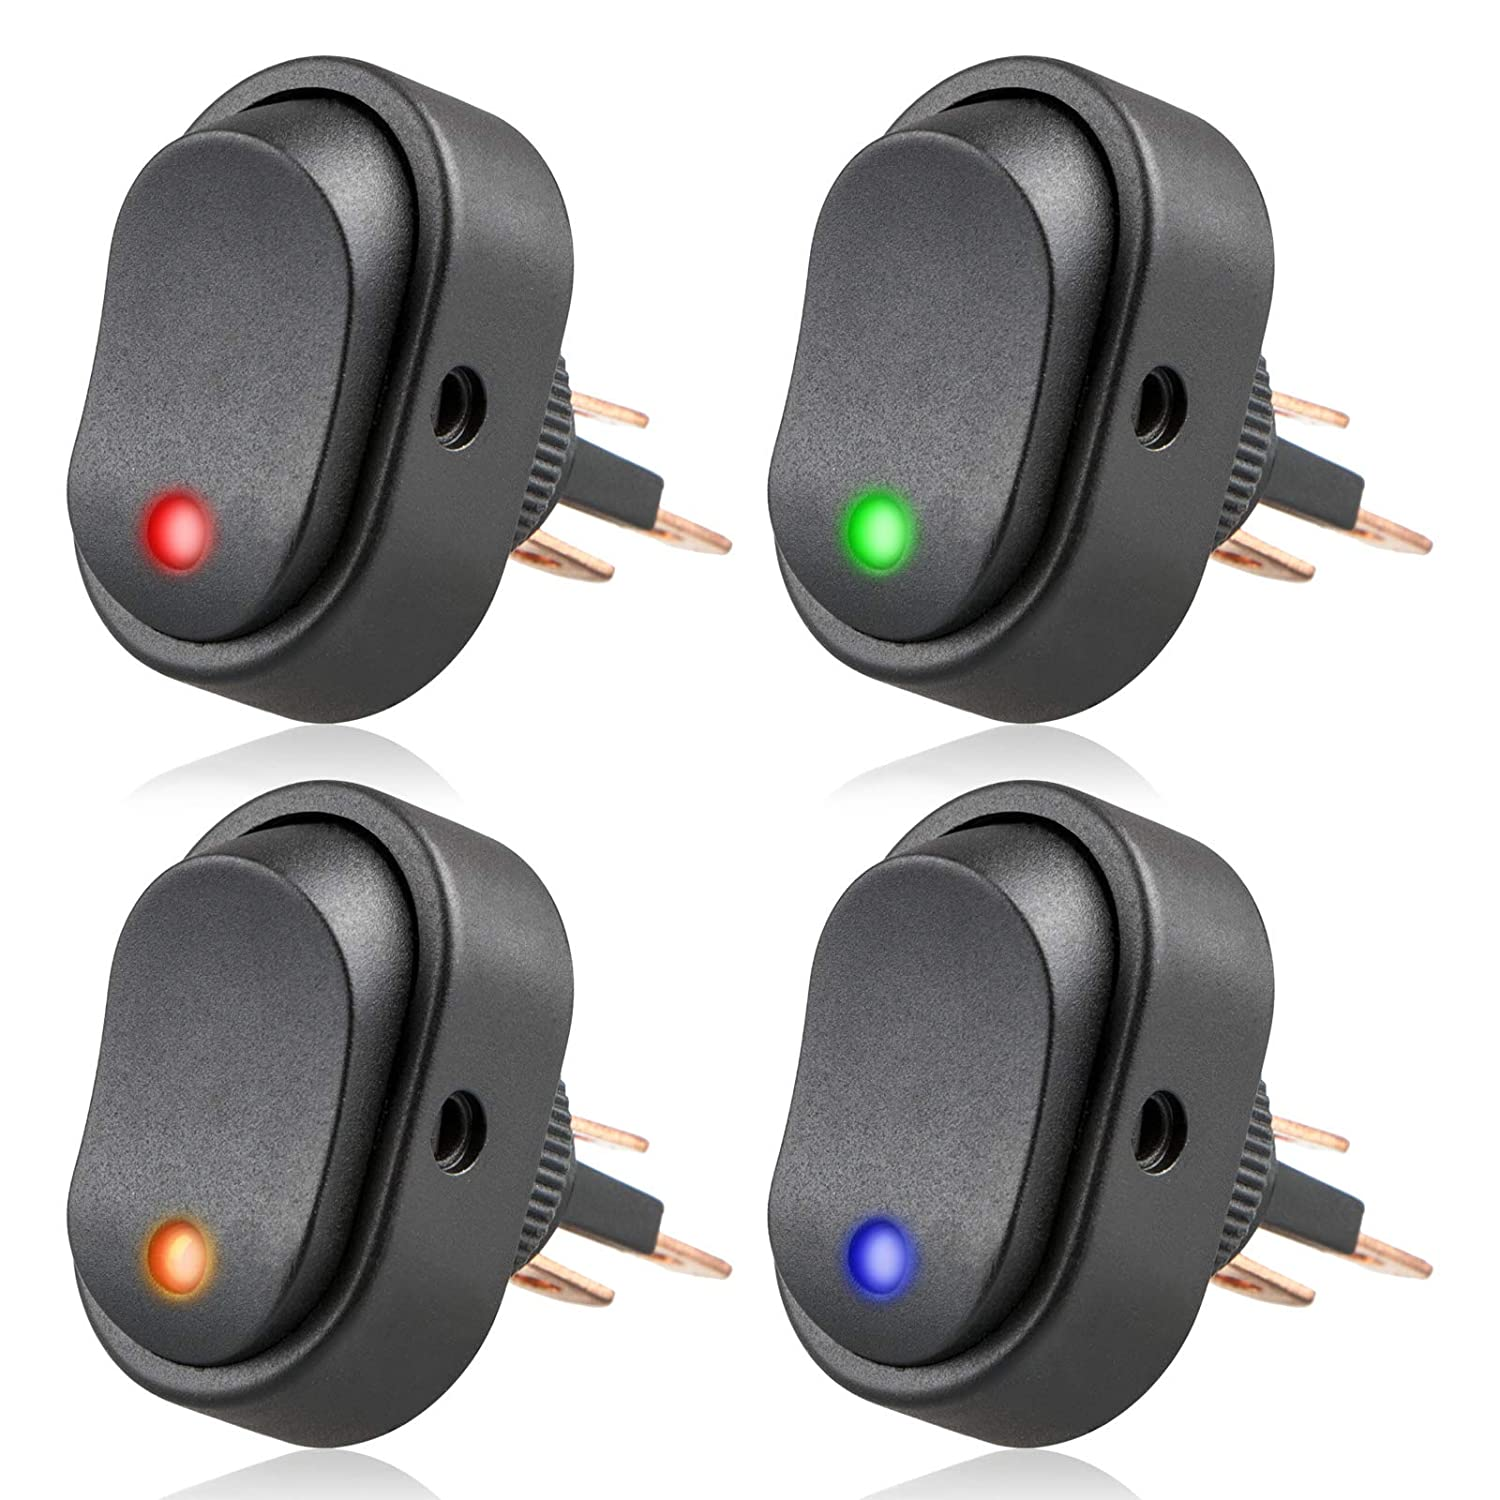 Linkstyle 4pcs 12v 30a Spst Led Lighted Rocker Toggle Switch 3pin X2 With Red Green Indicator Lamps Dot Light On Off